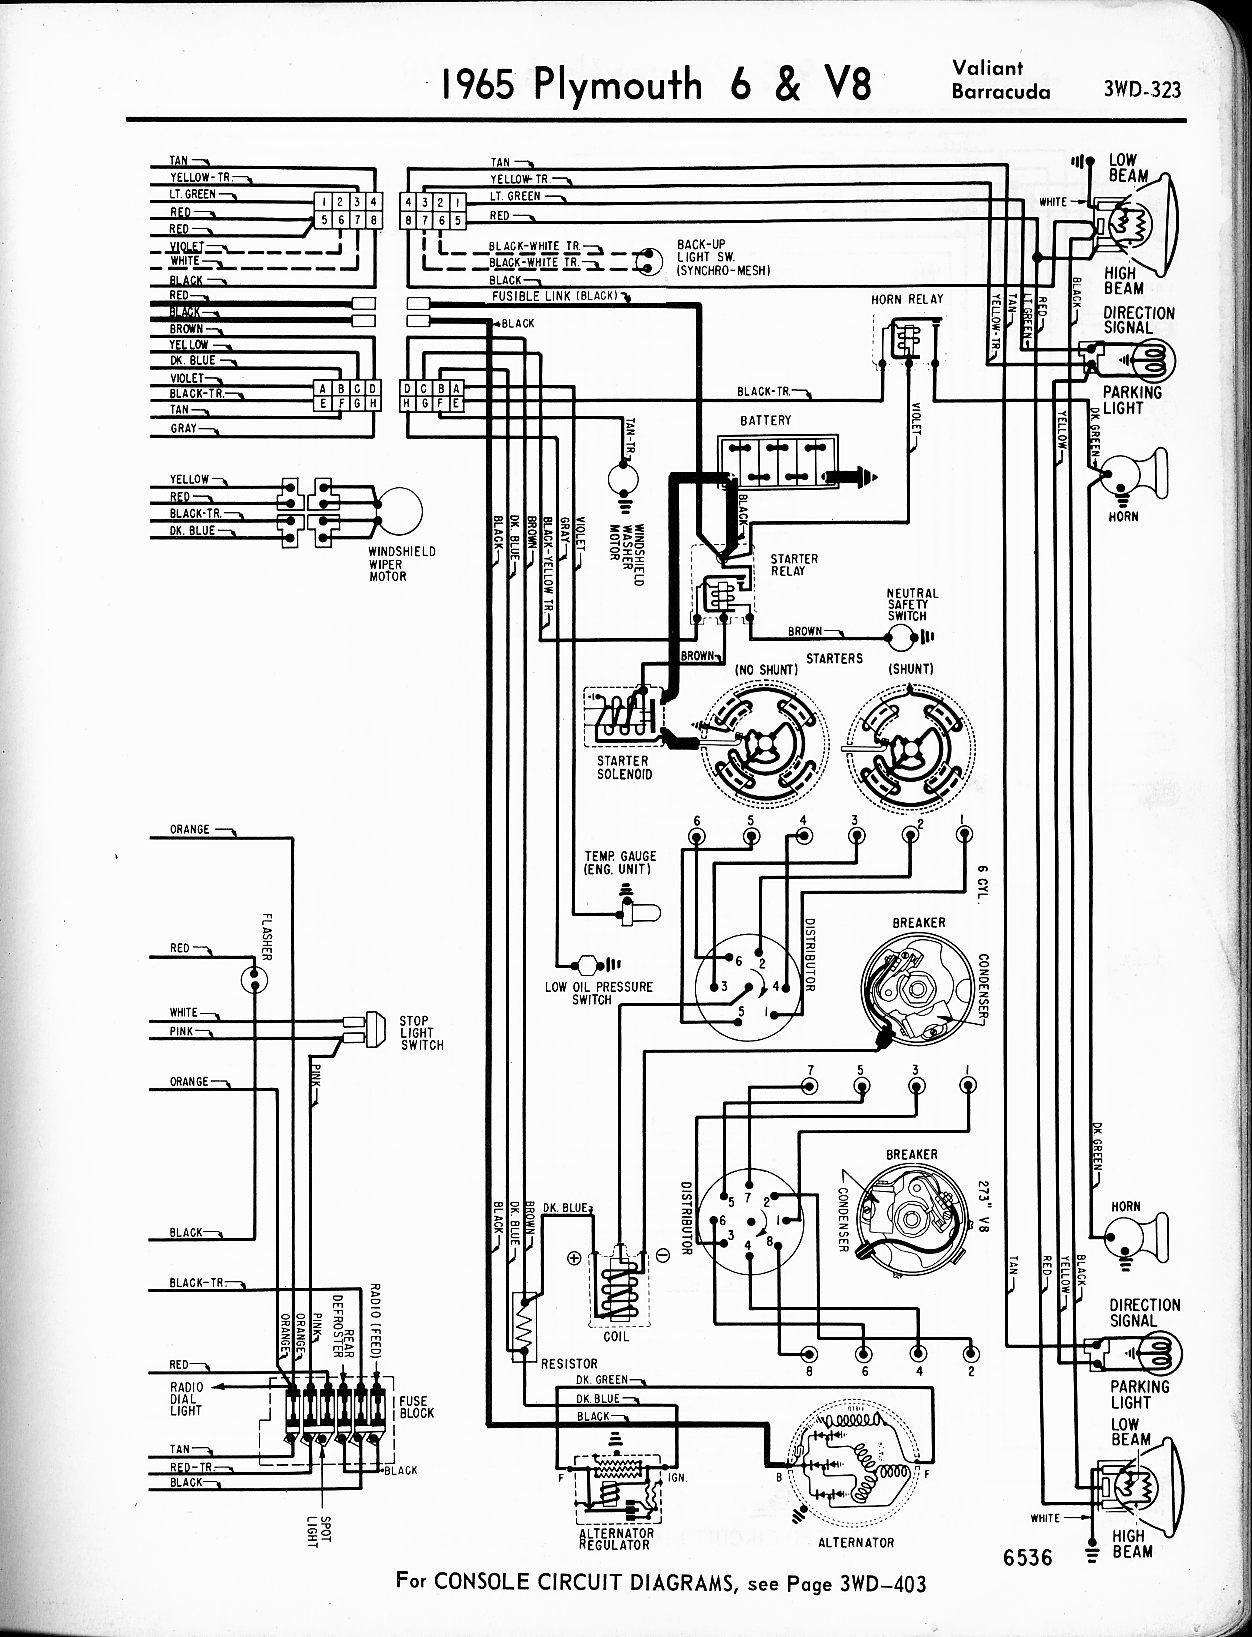 MWire5765 323?resize\\\=665%2C869 dtx gnp 40048 wiring diagram dtx wiring diagrams collection  at gsmportal.co